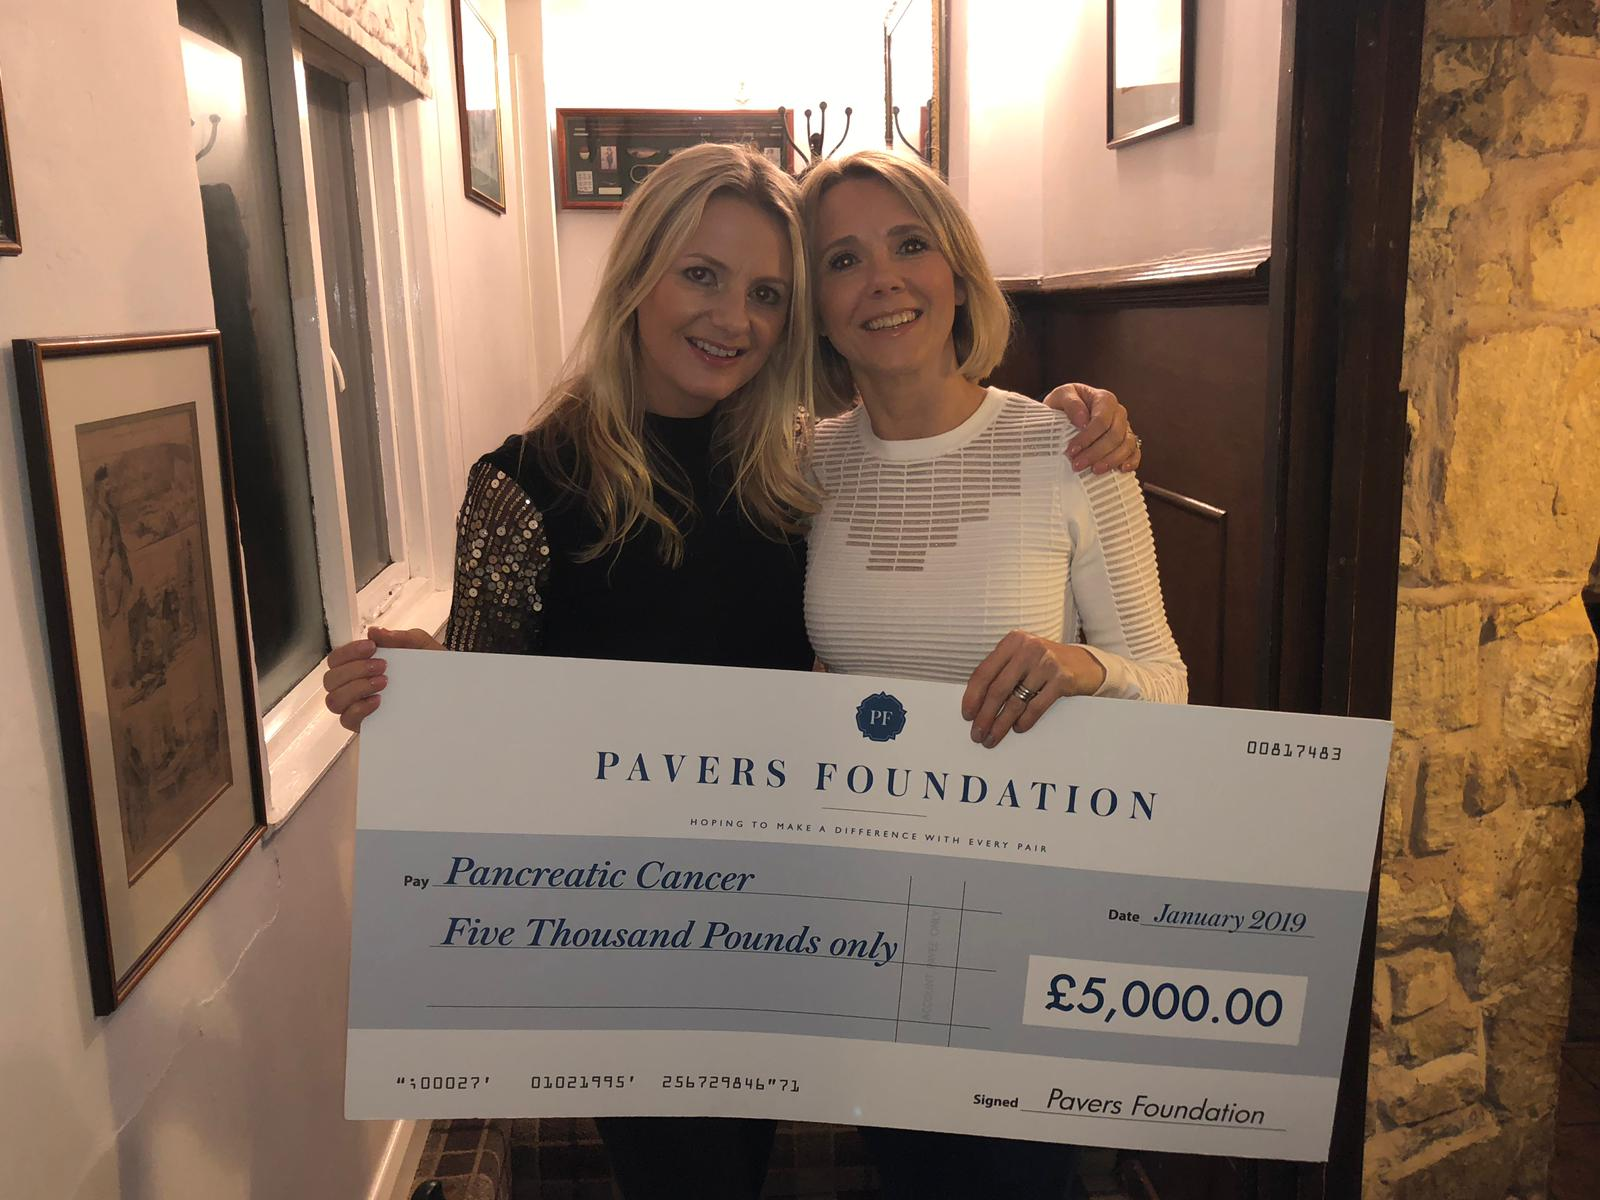 Pancreatic Cancer UK Receives £5,000 from the Pavers Foundation